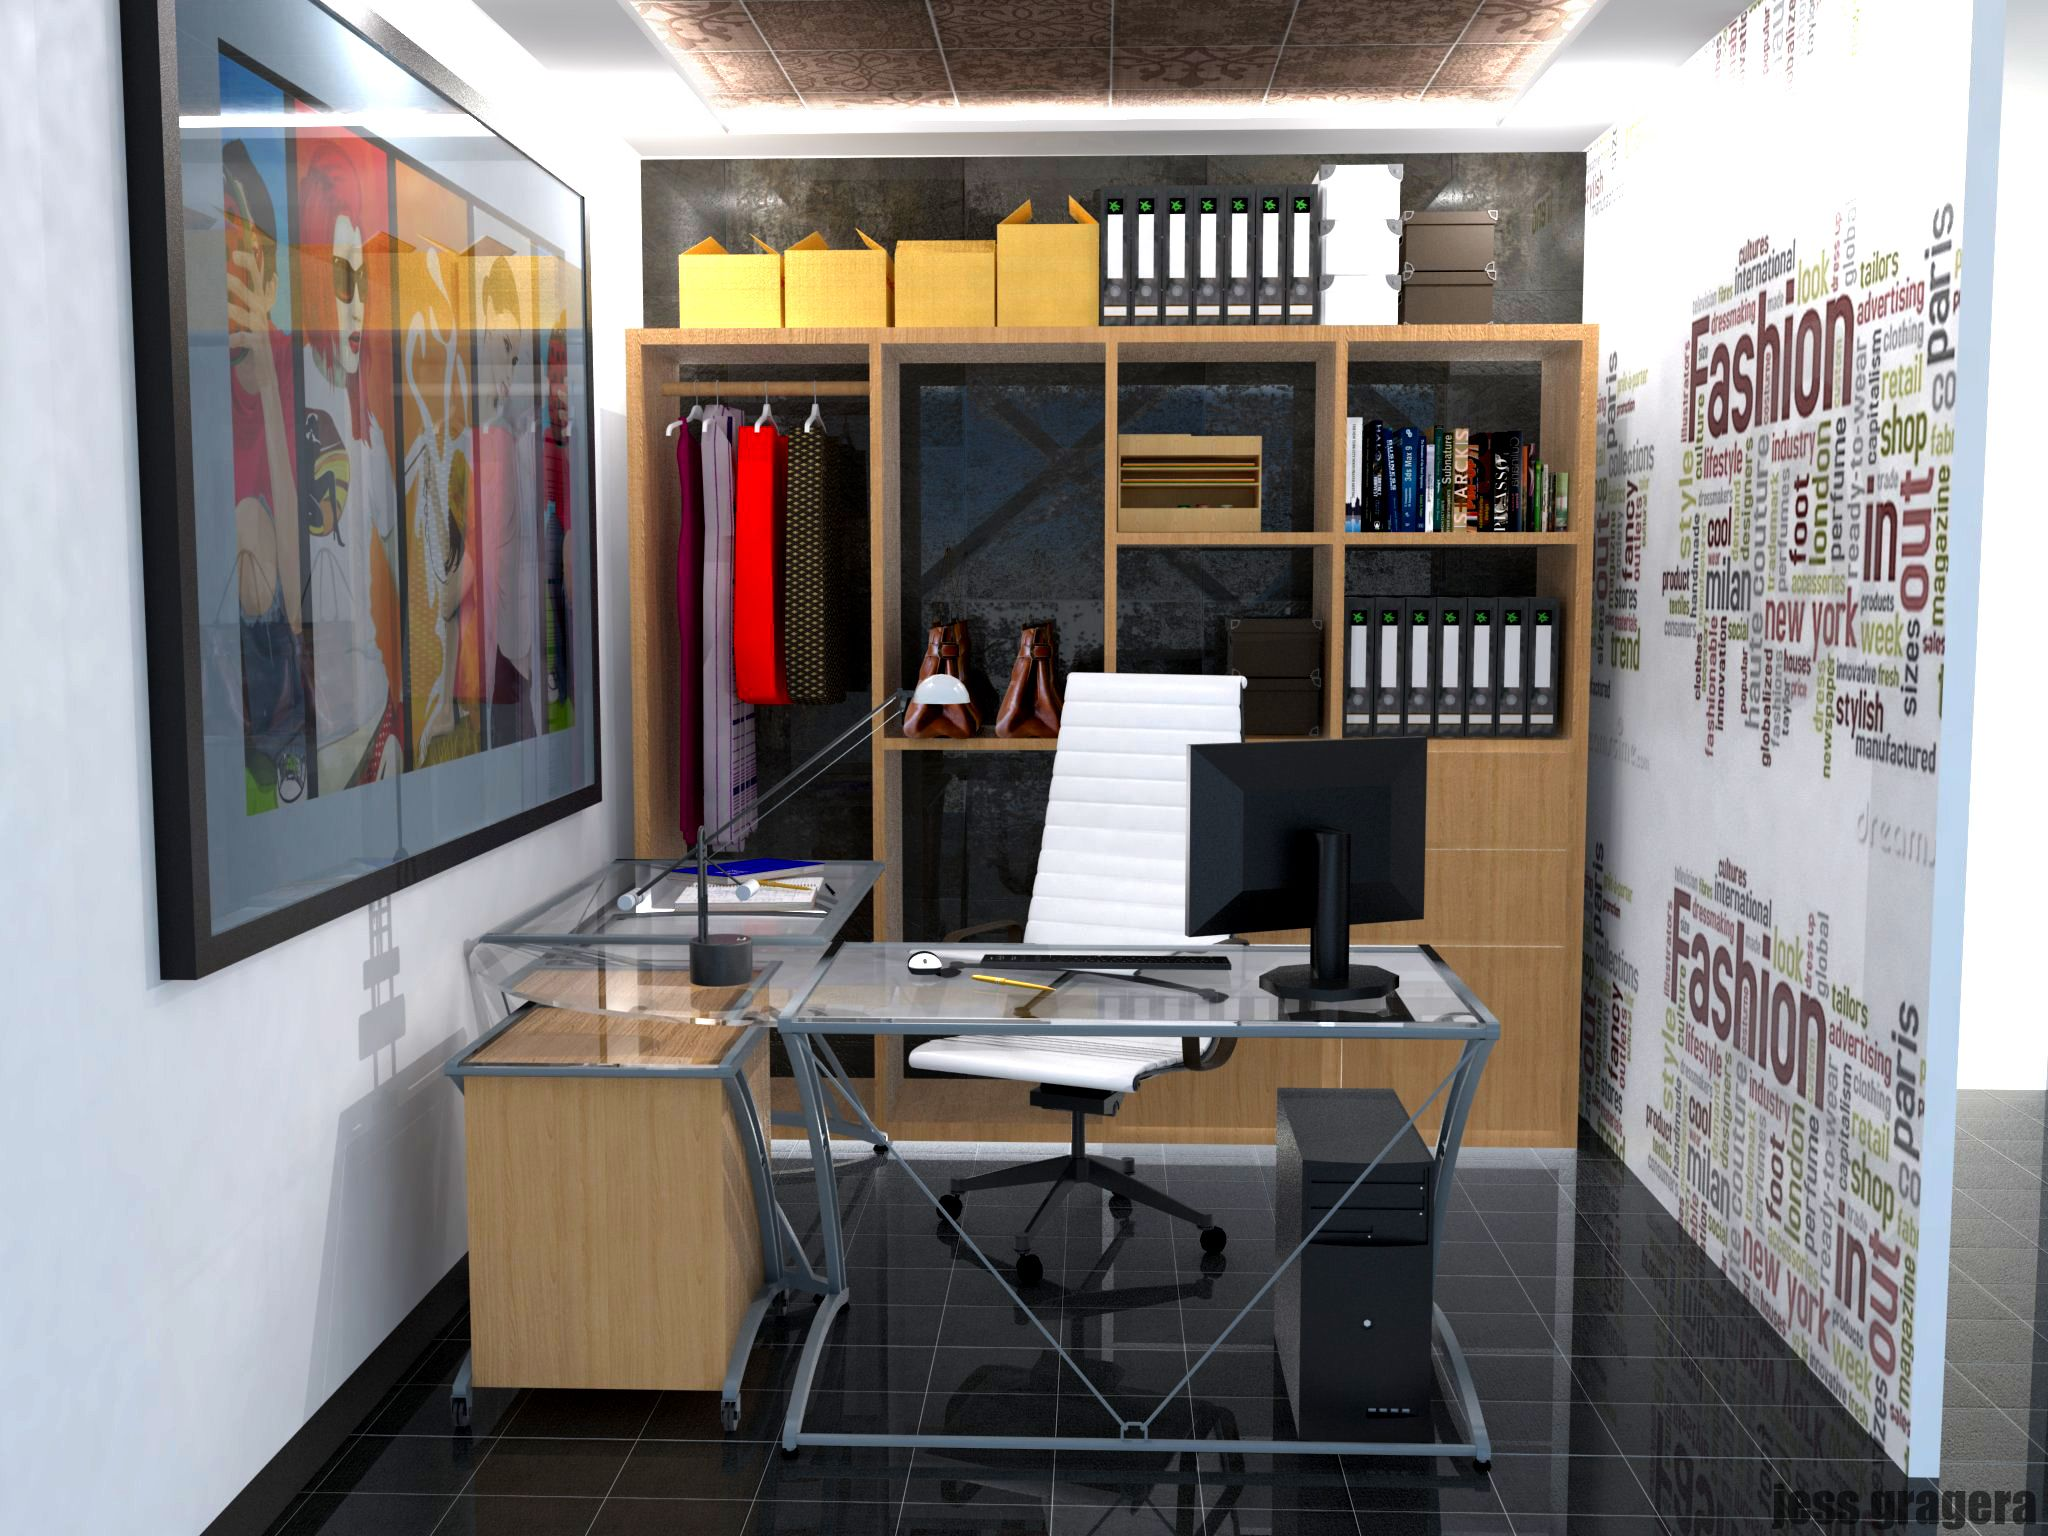 Interior Perspective Office Sketchup Vray Photoshop  # Muebles Google Sketchup